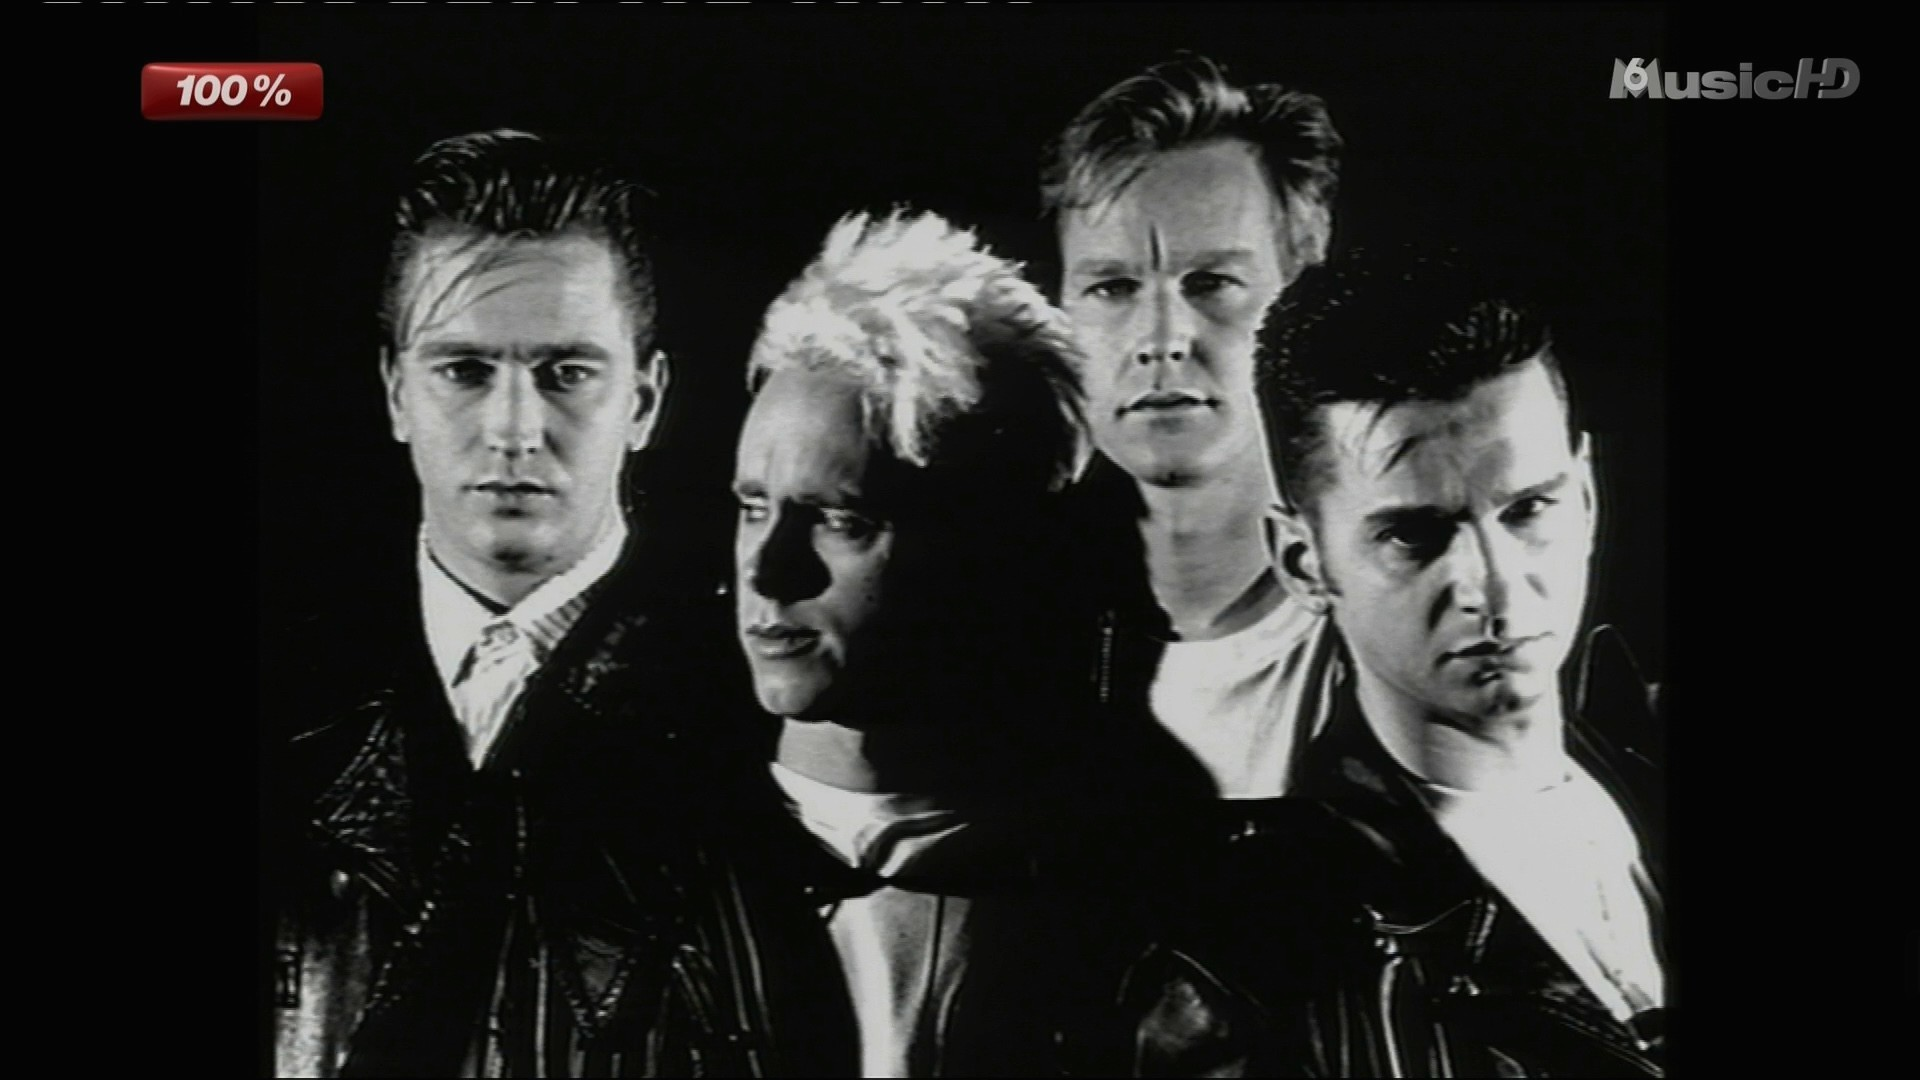 1920x1080 Depeche Mode high definition wallpapers